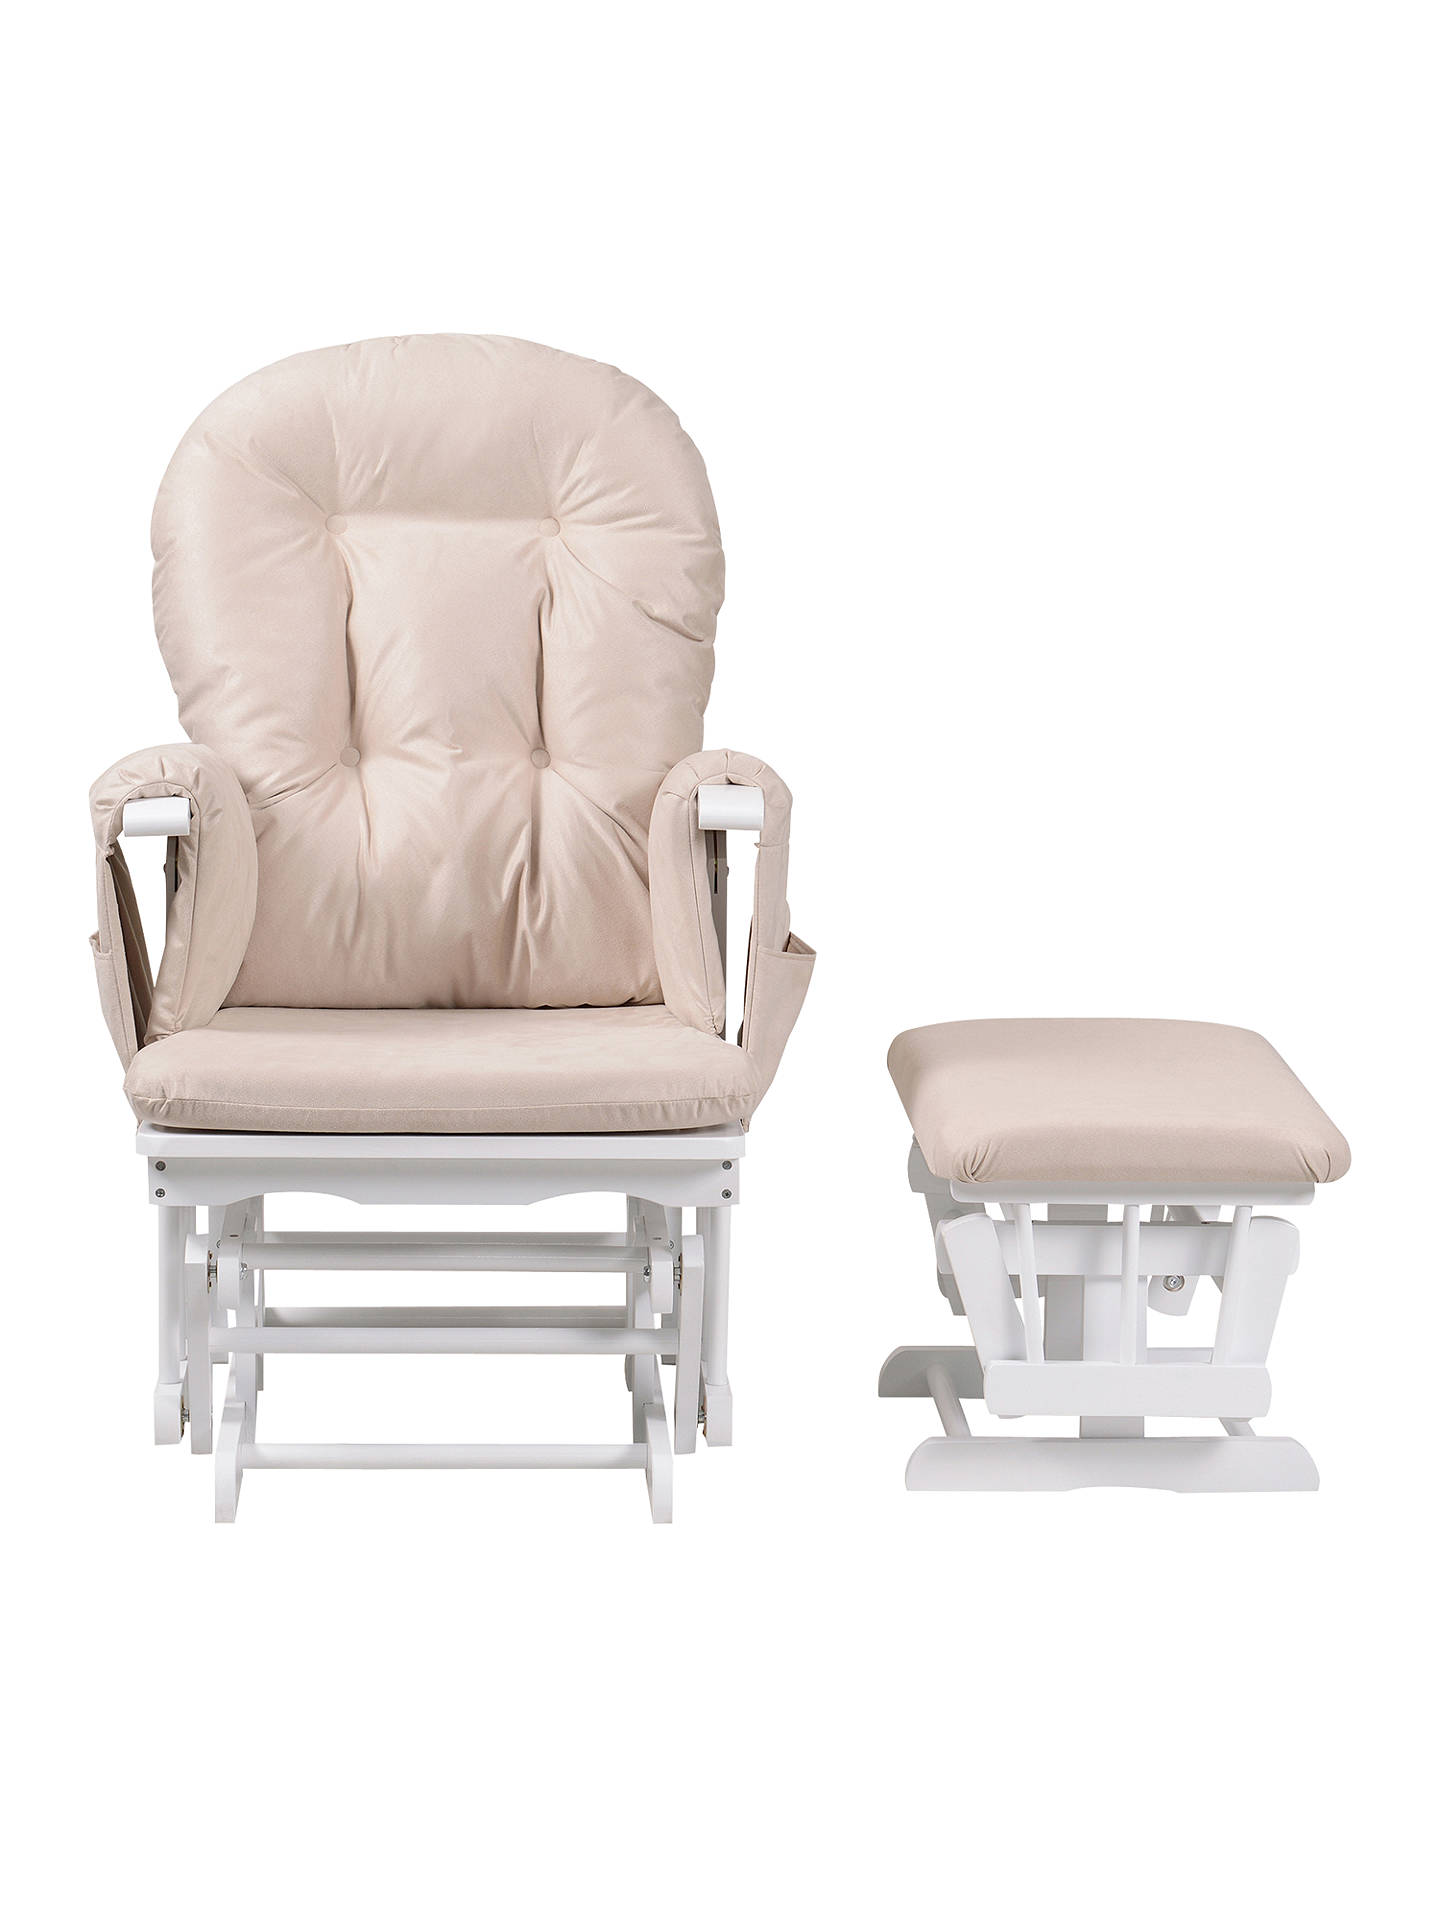 Super Kub Haywood Reclining Glider Nursing Chair And Footstool White Ncnpc Chair Design For Home Ncnpcorg